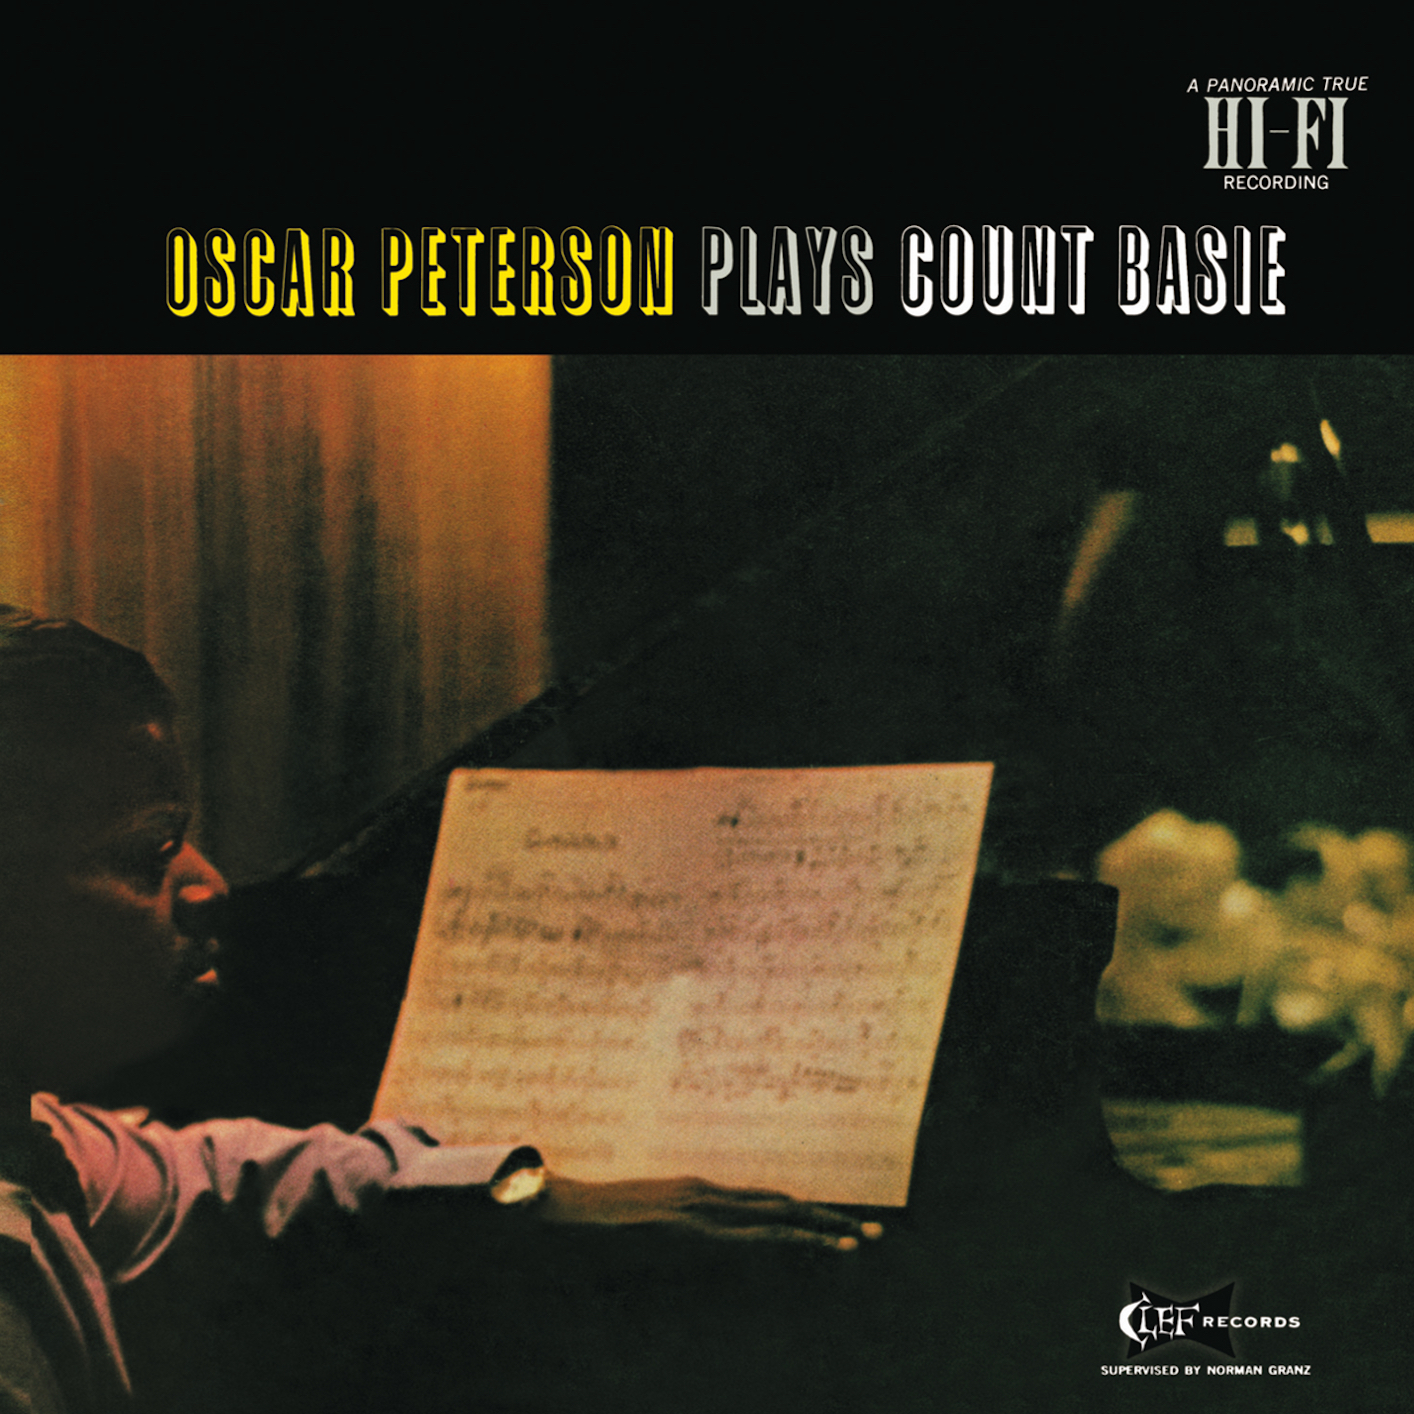 Cds likewise David Stone Martin Part 1 further Jazz Images The Jean Pierre Leloir Collection 3618 as well The Glenn Miller Orchestra moreover Aj7sFvWC9ug. on oscar peterson plays count basie